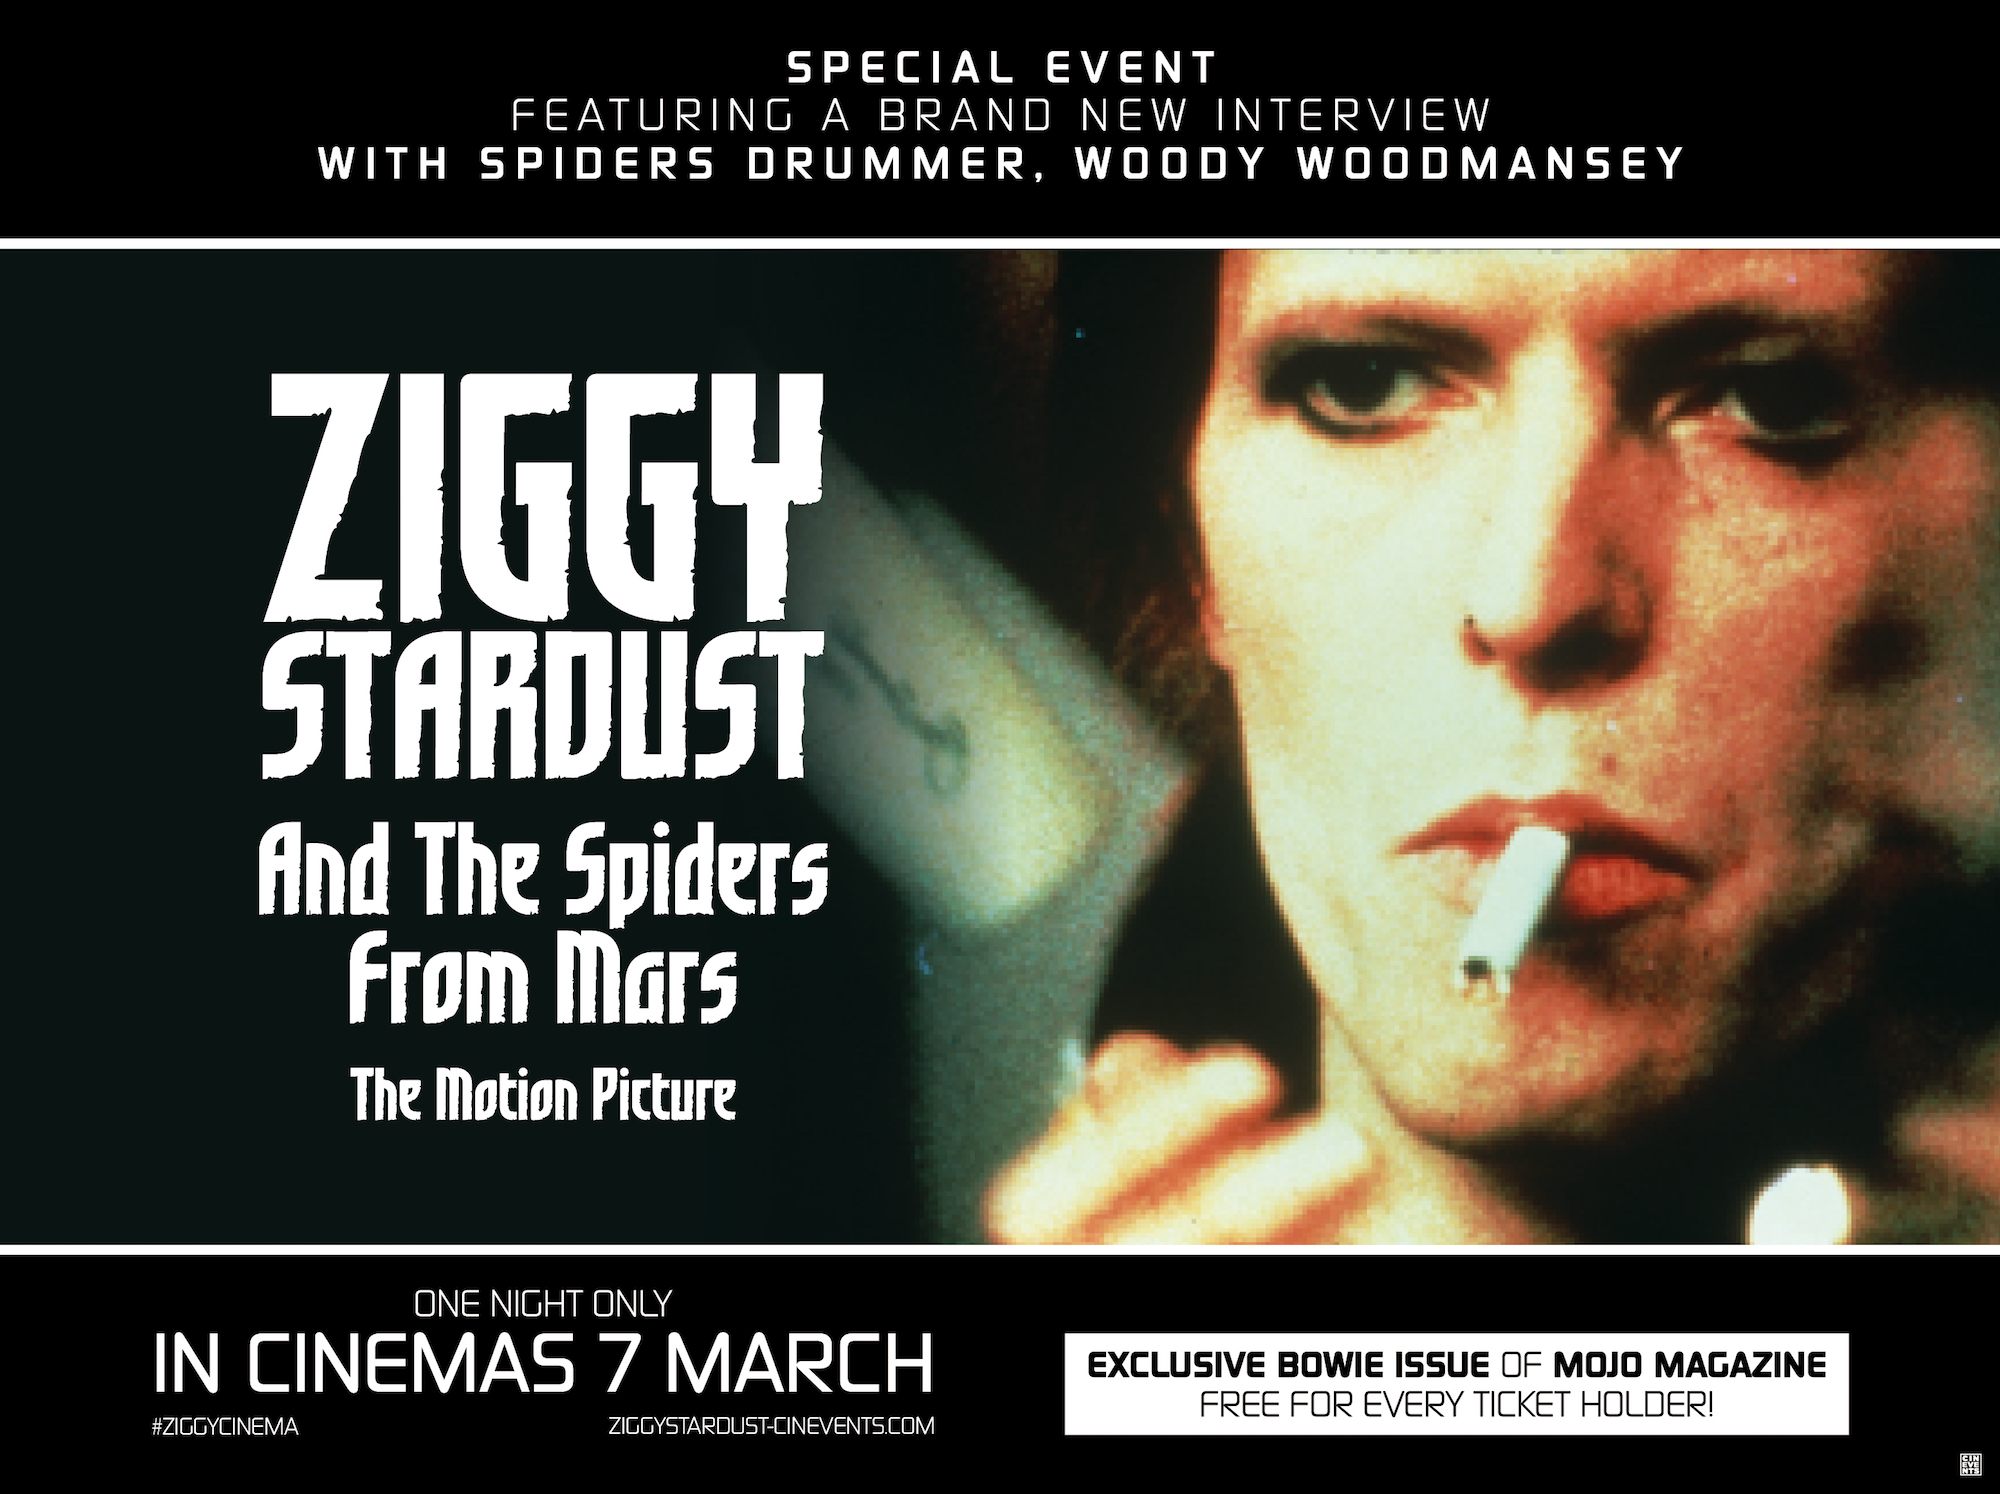 Ziggy stardust and the spiders from mars 1973 - imdb